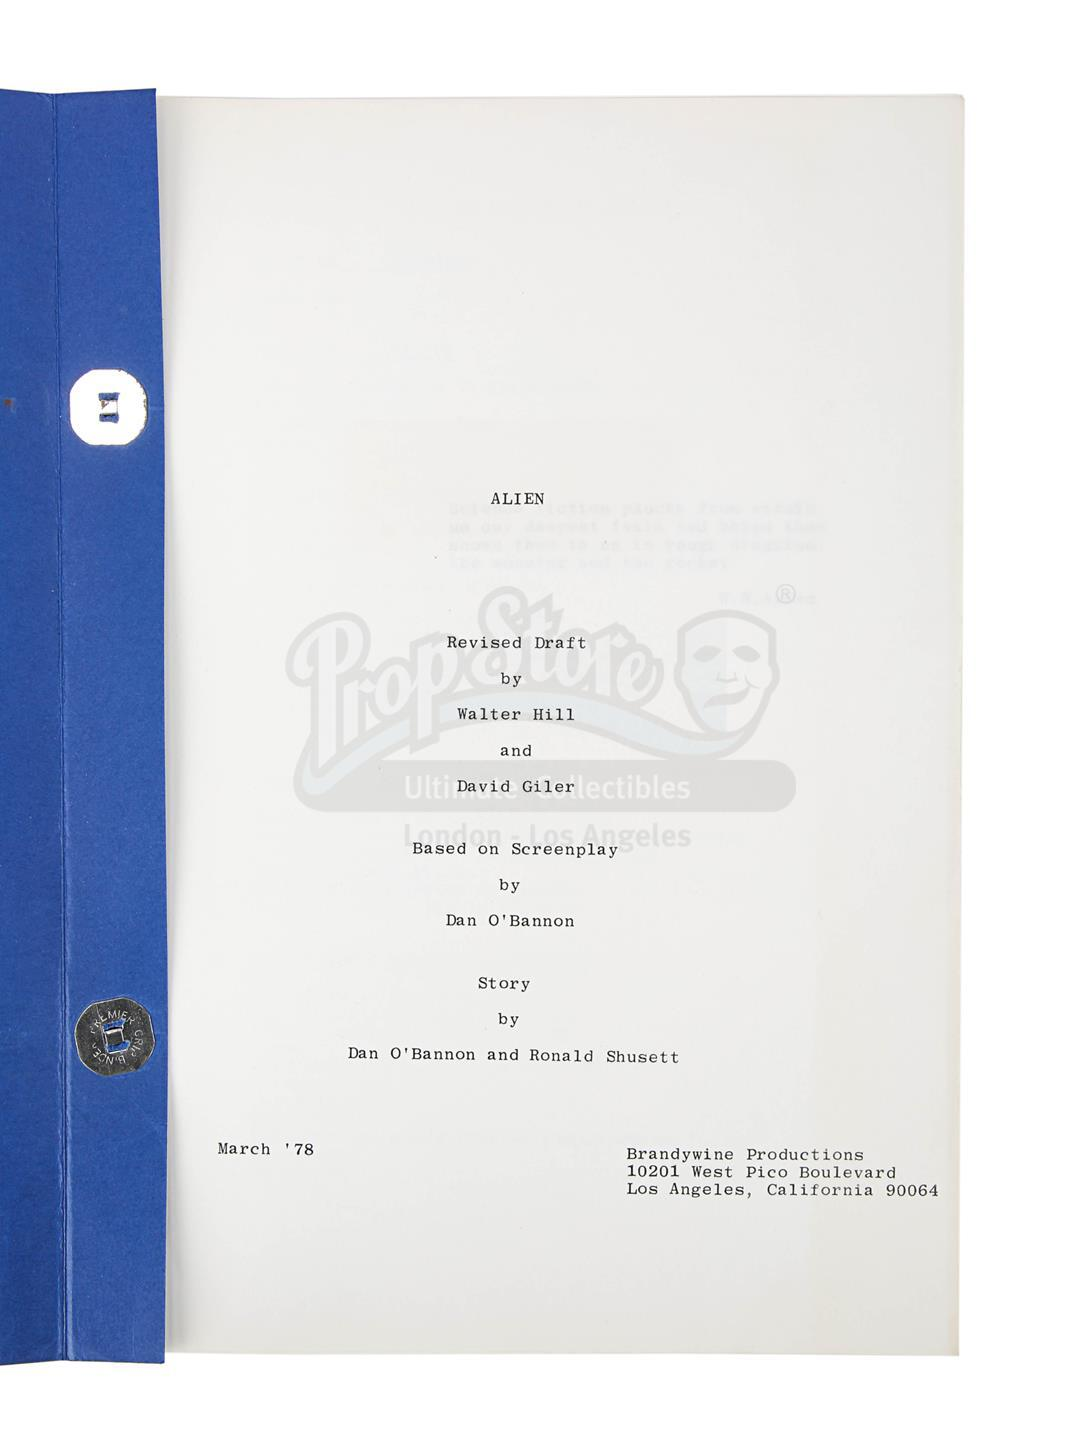 ALIEN (1979) - Revised Production-Used Script - Image 6 of 8